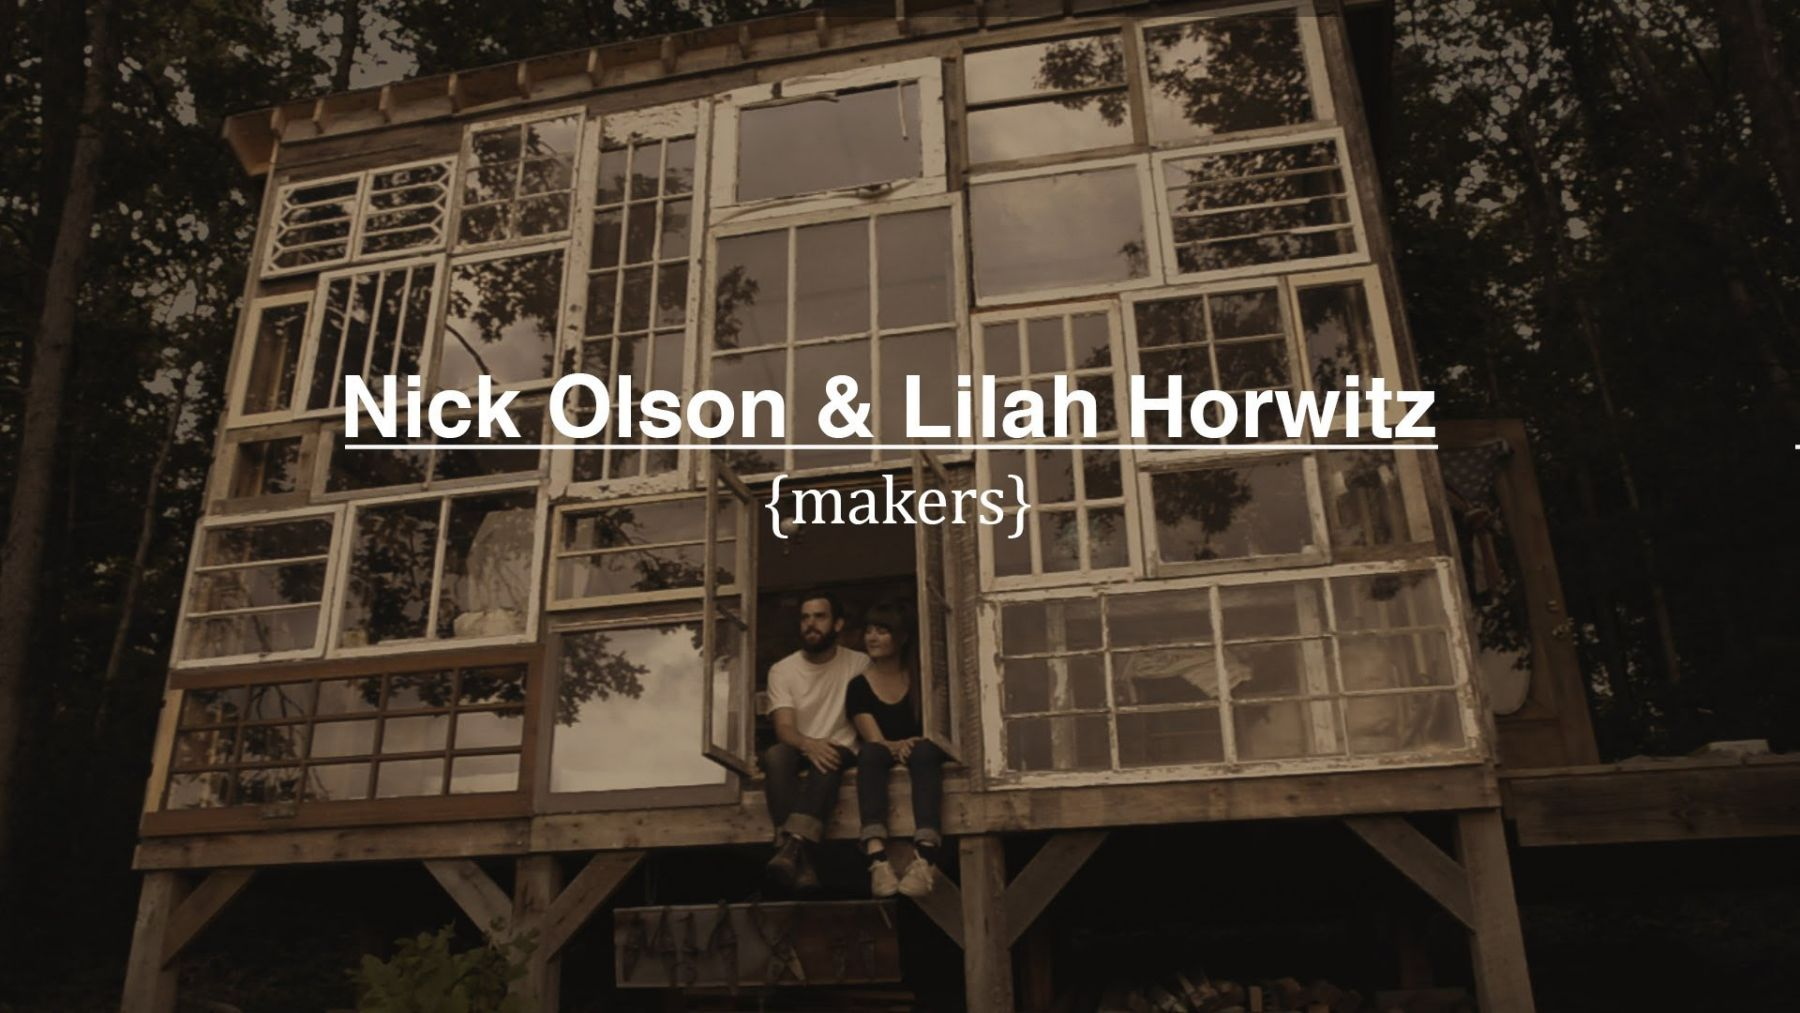 In 2012, Nick Olson and Lilah Horwitz quit their jobs and set off to build a glass cabin in the ...